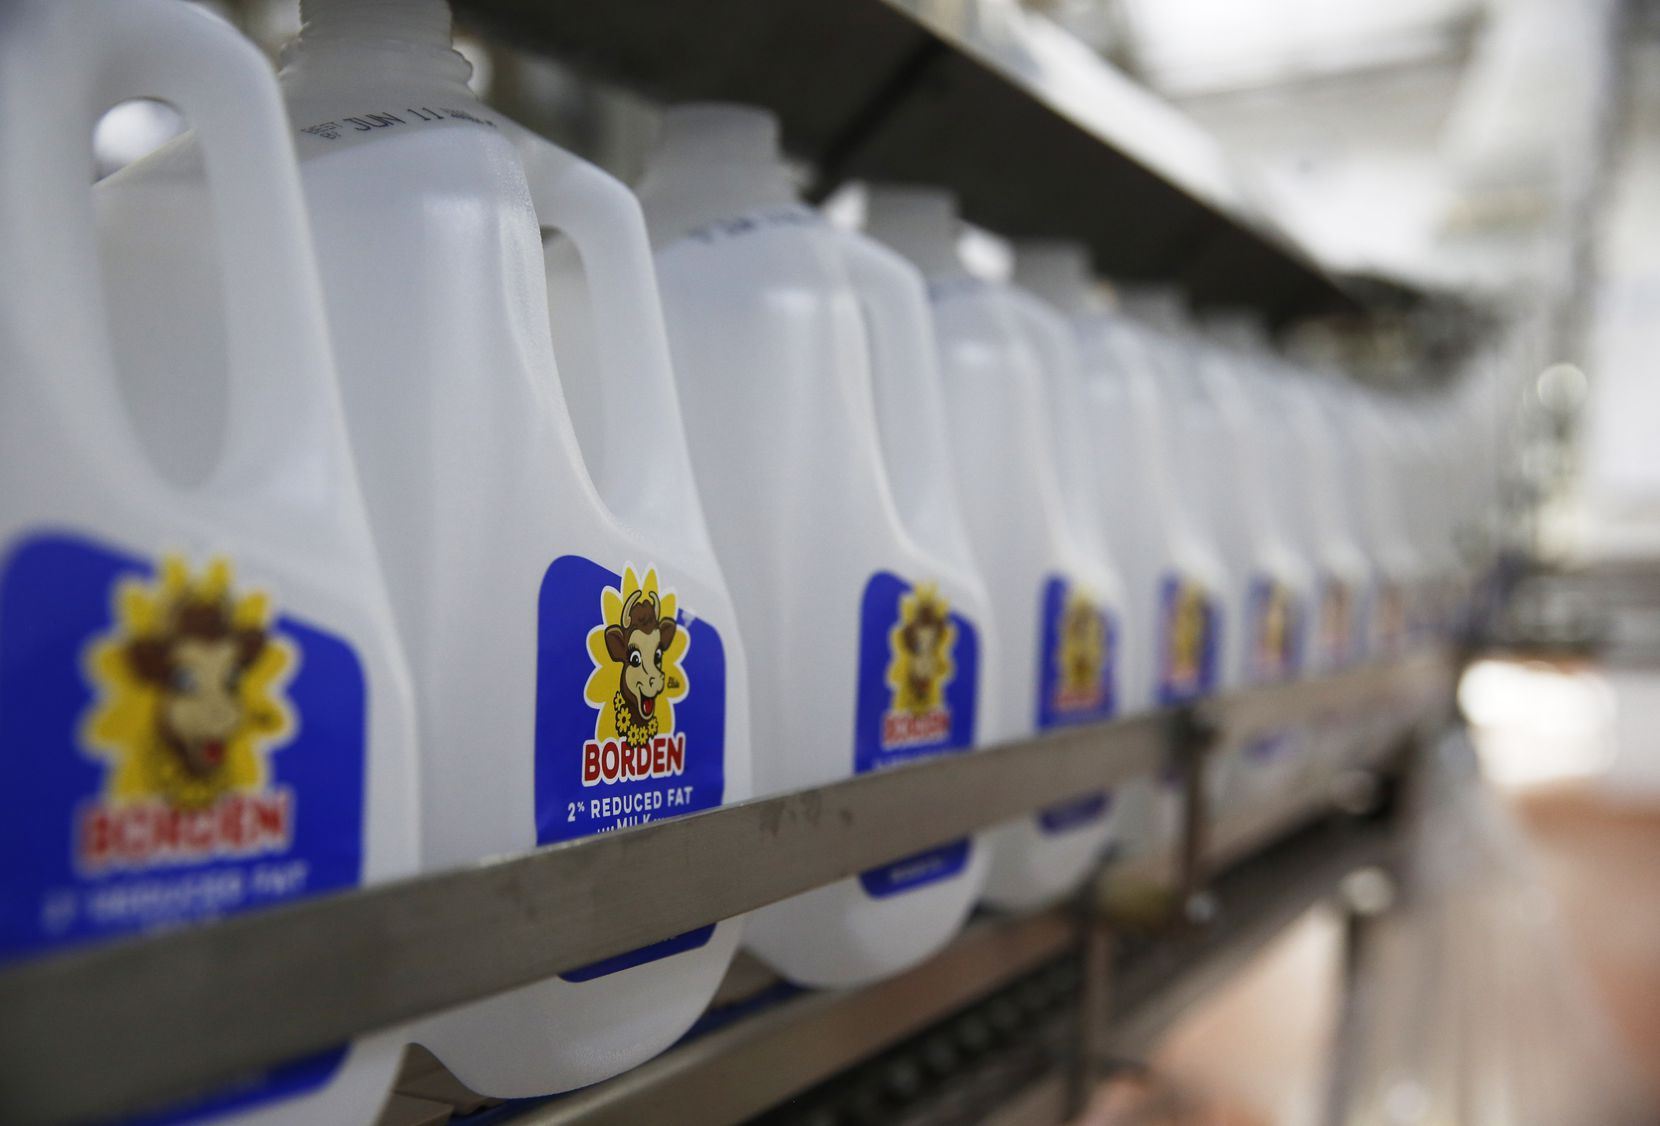 Empty bottles of Borden 2% reduced fat milk bottles make their way through the bottling line at Borden Dairy Co. in Dallas.